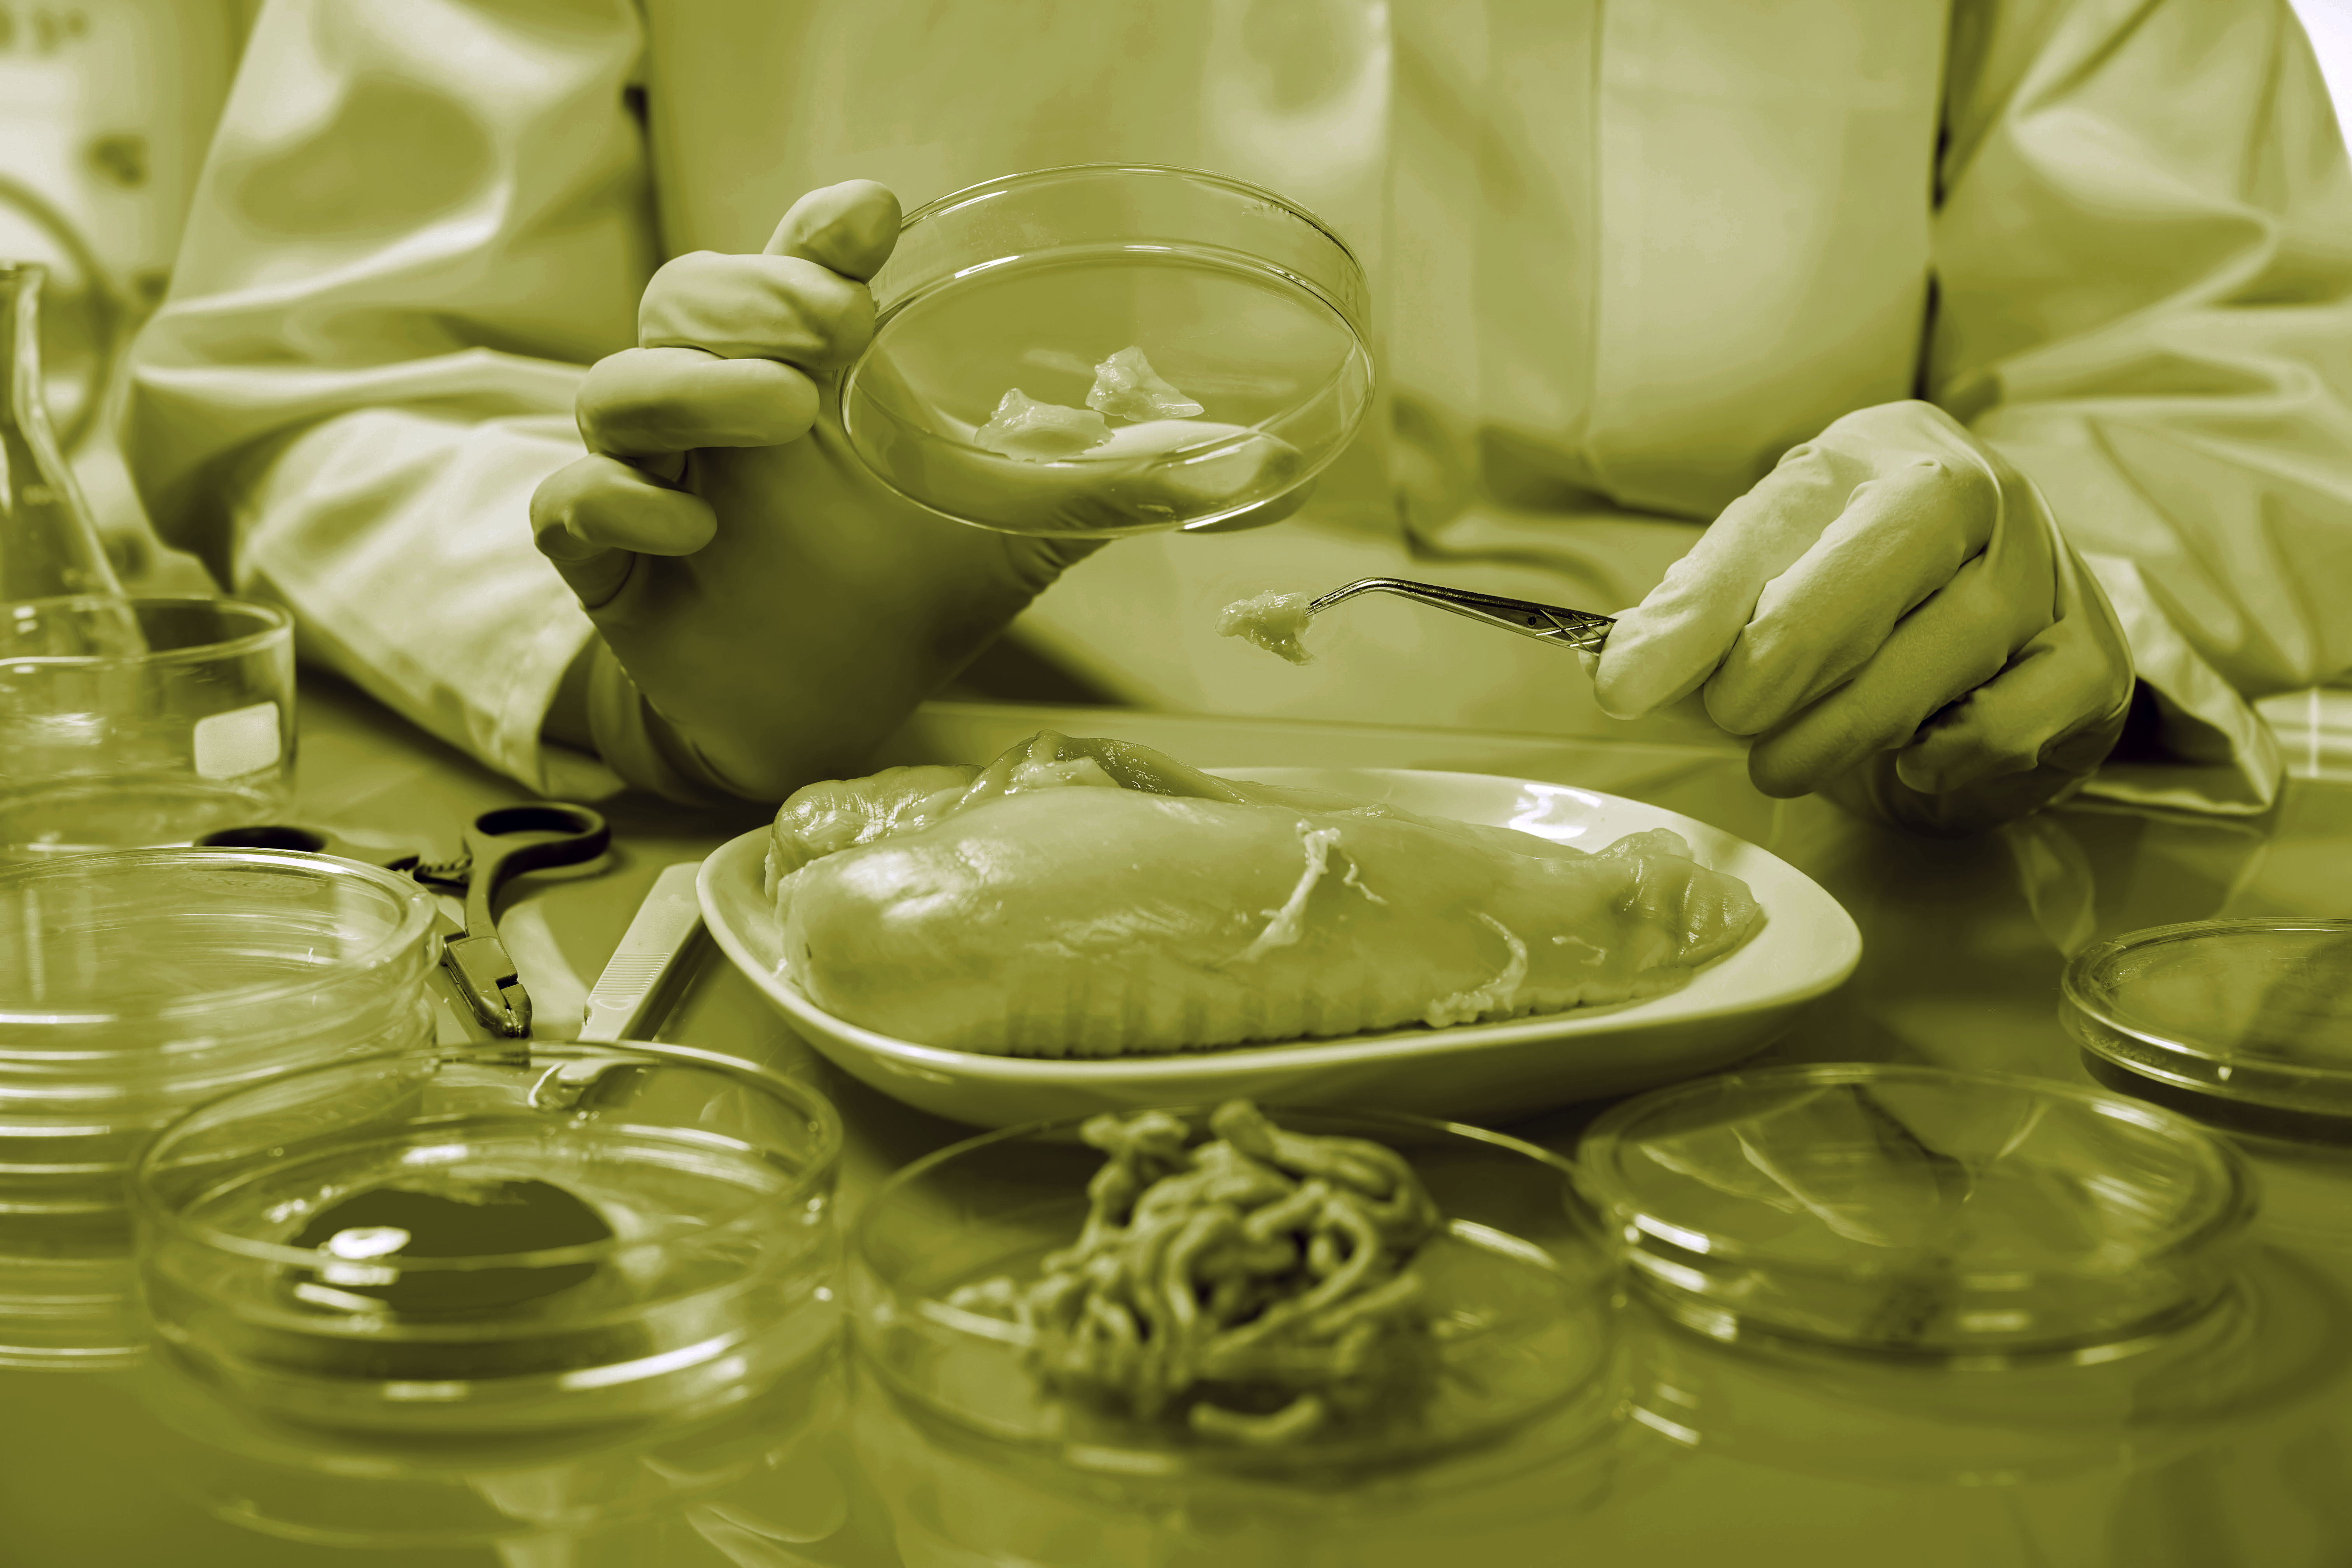 Food safety after brexit. Scientist examining food.